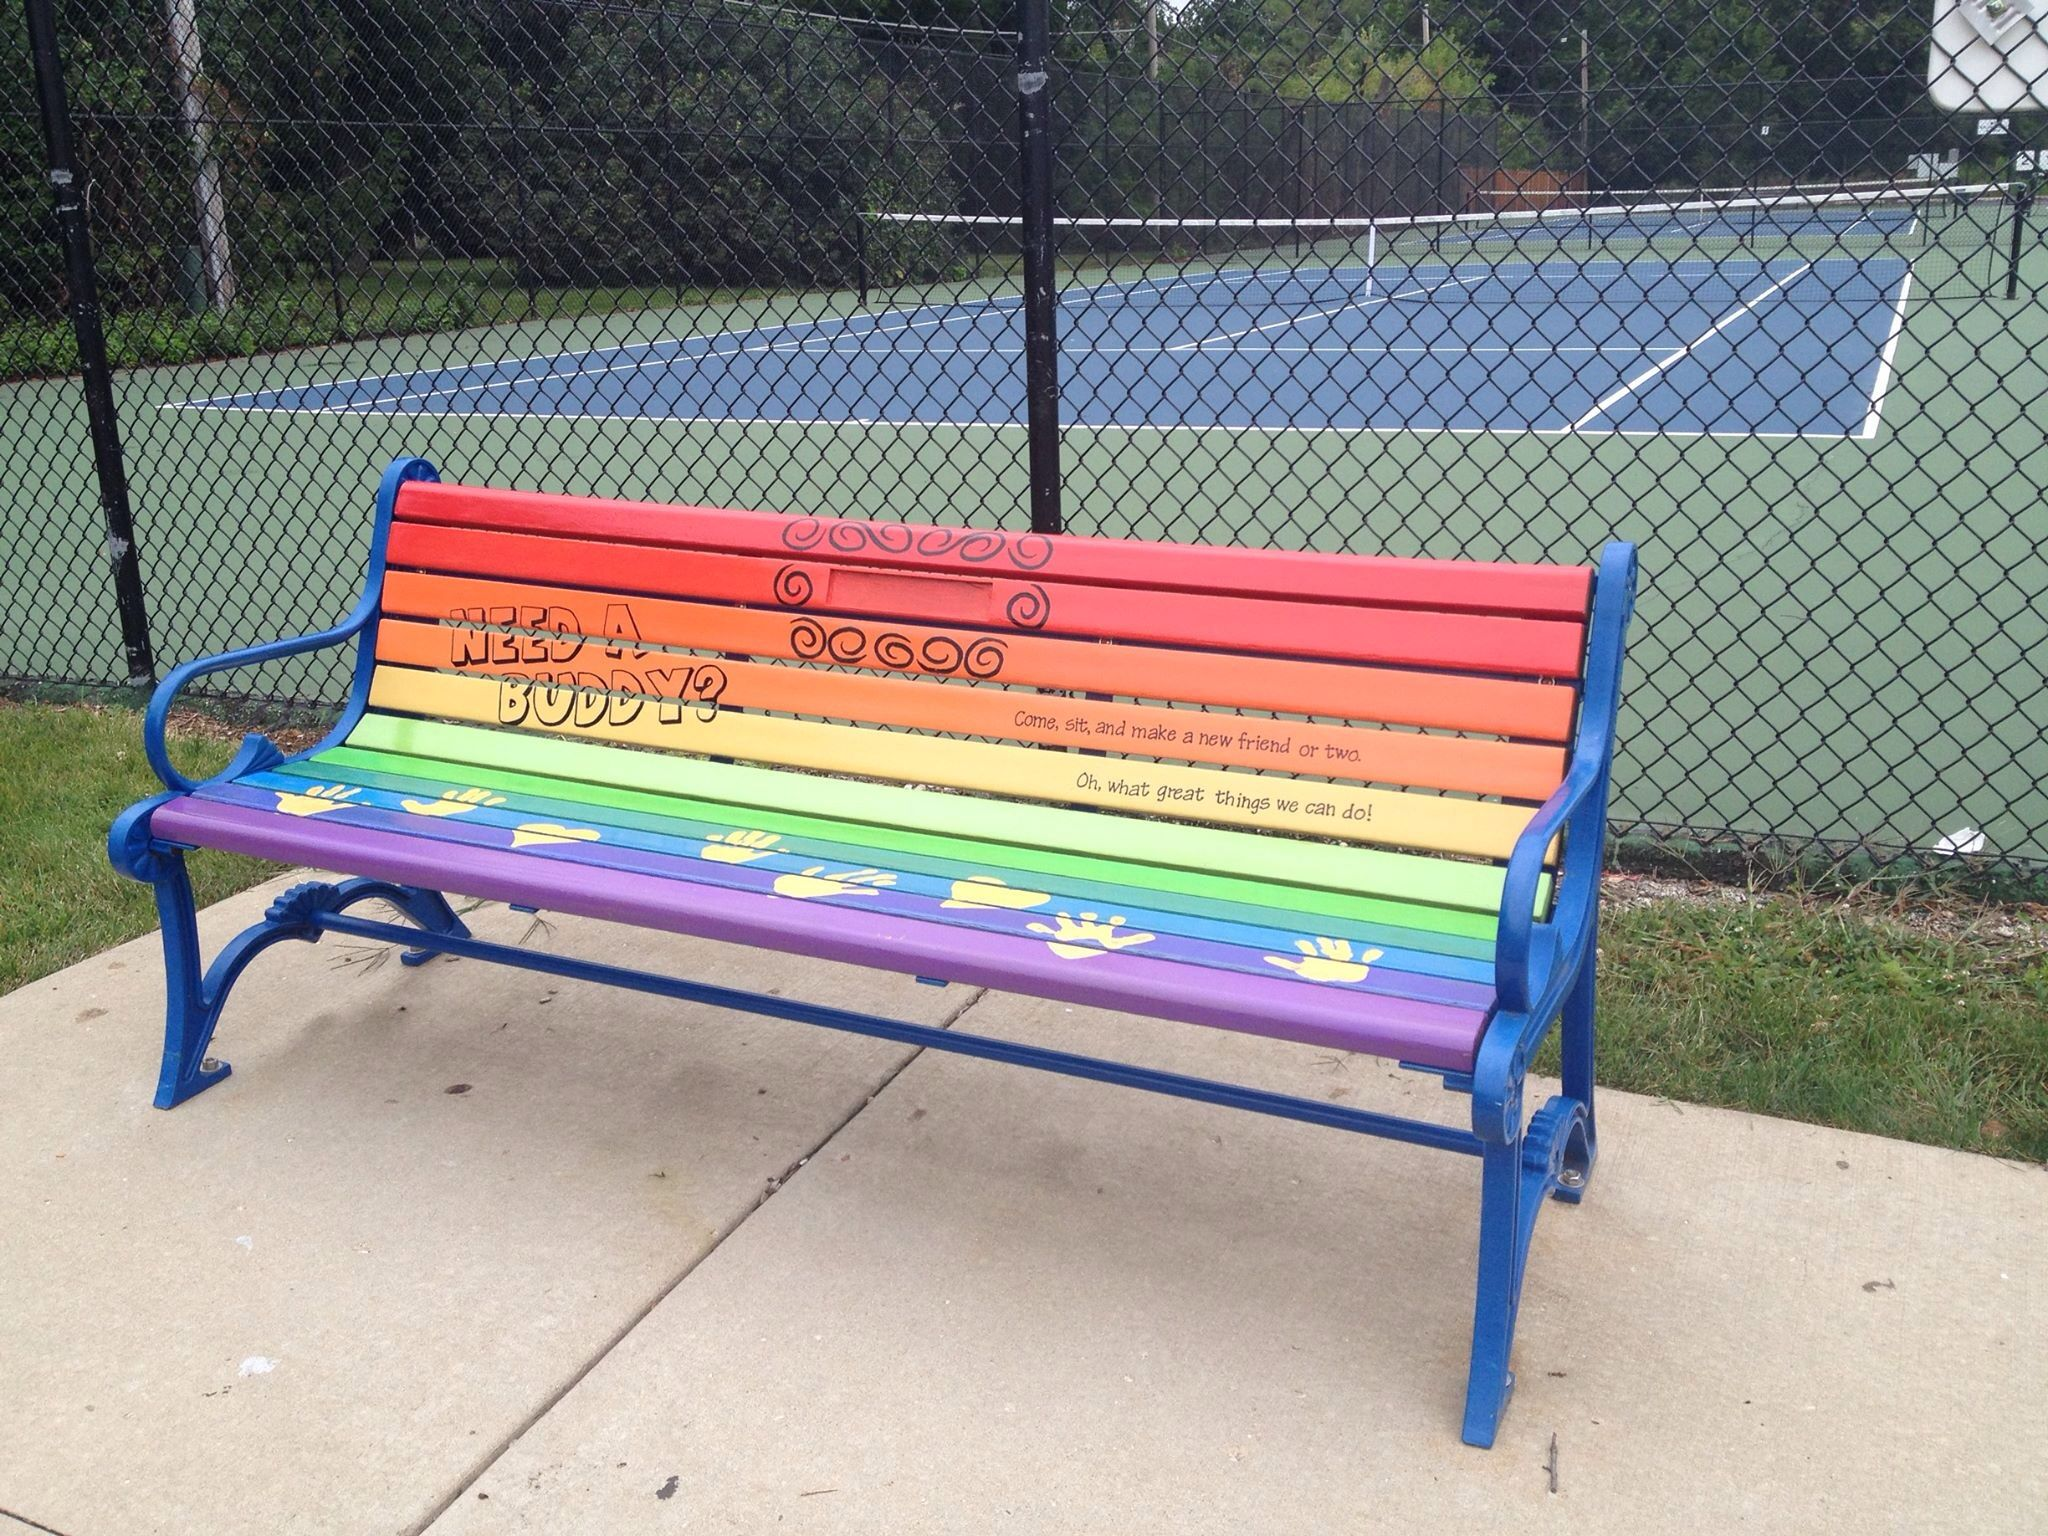 GS higher awards Buddy Bench Need a Buddy e sit and make a